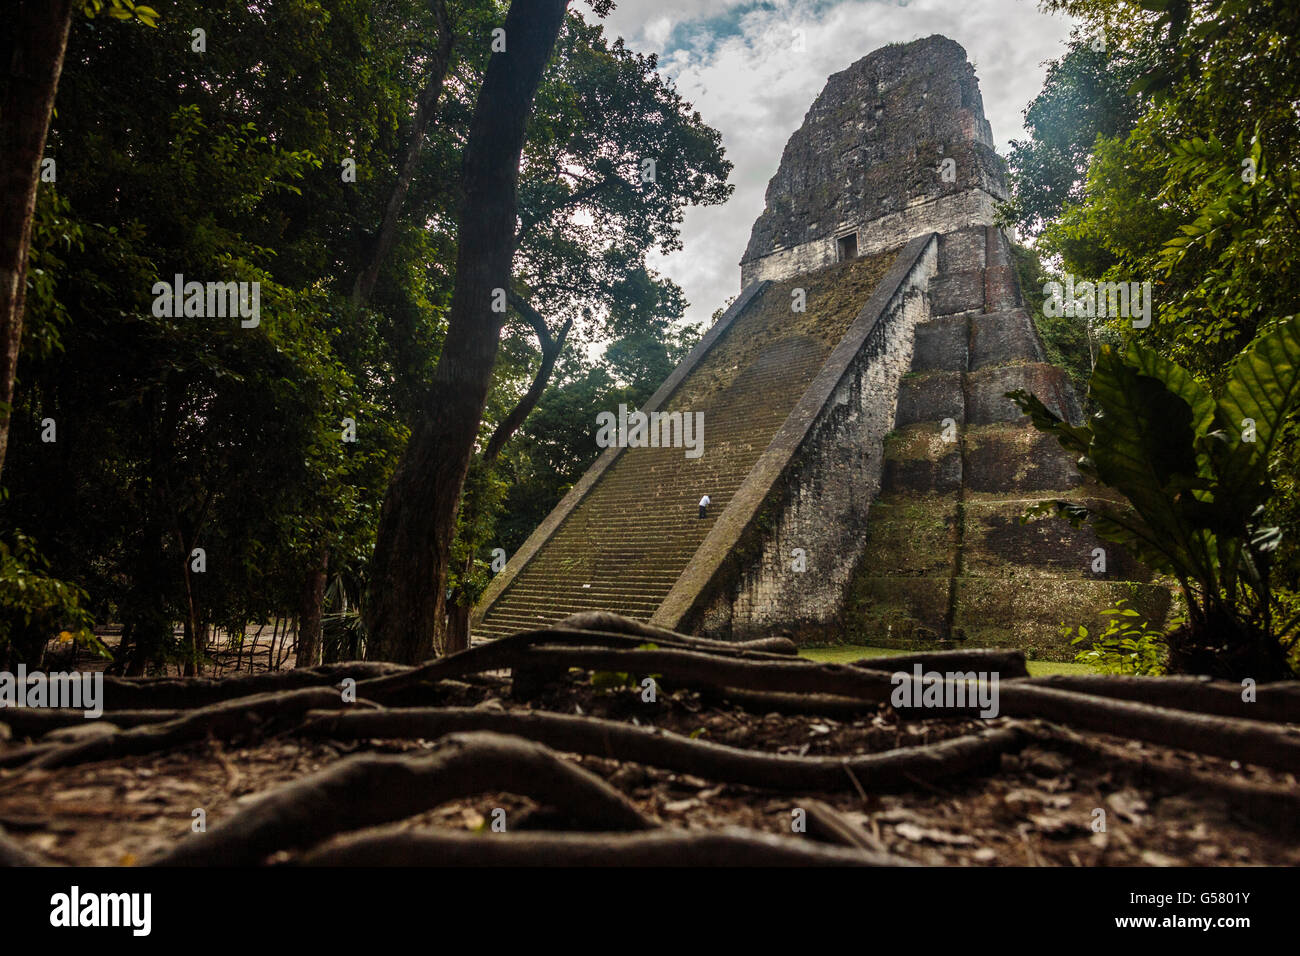 A man cleans the steps of the Temple 5 in the lost world of Guatemala's Mayan Ruins in the jungle of Tikal National - Stock Image